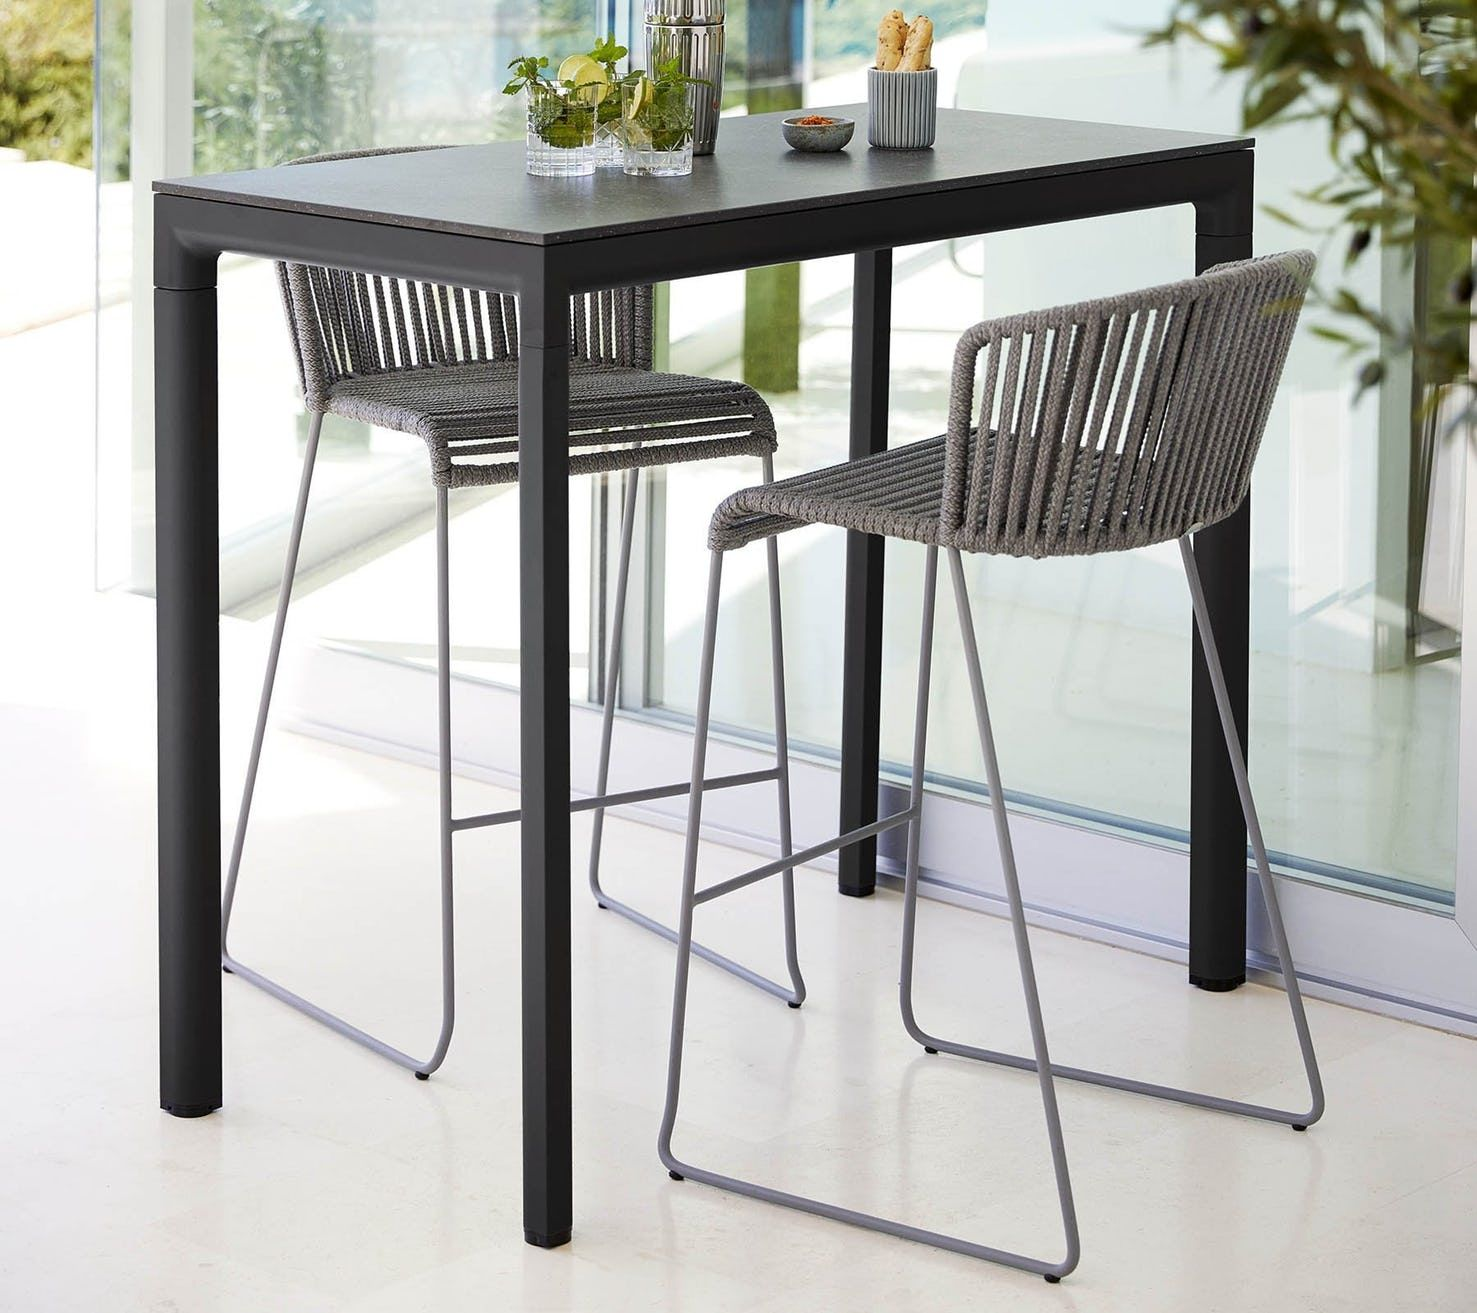 Drop Bar Table By Cane Line Now Available At Haute Living Bar